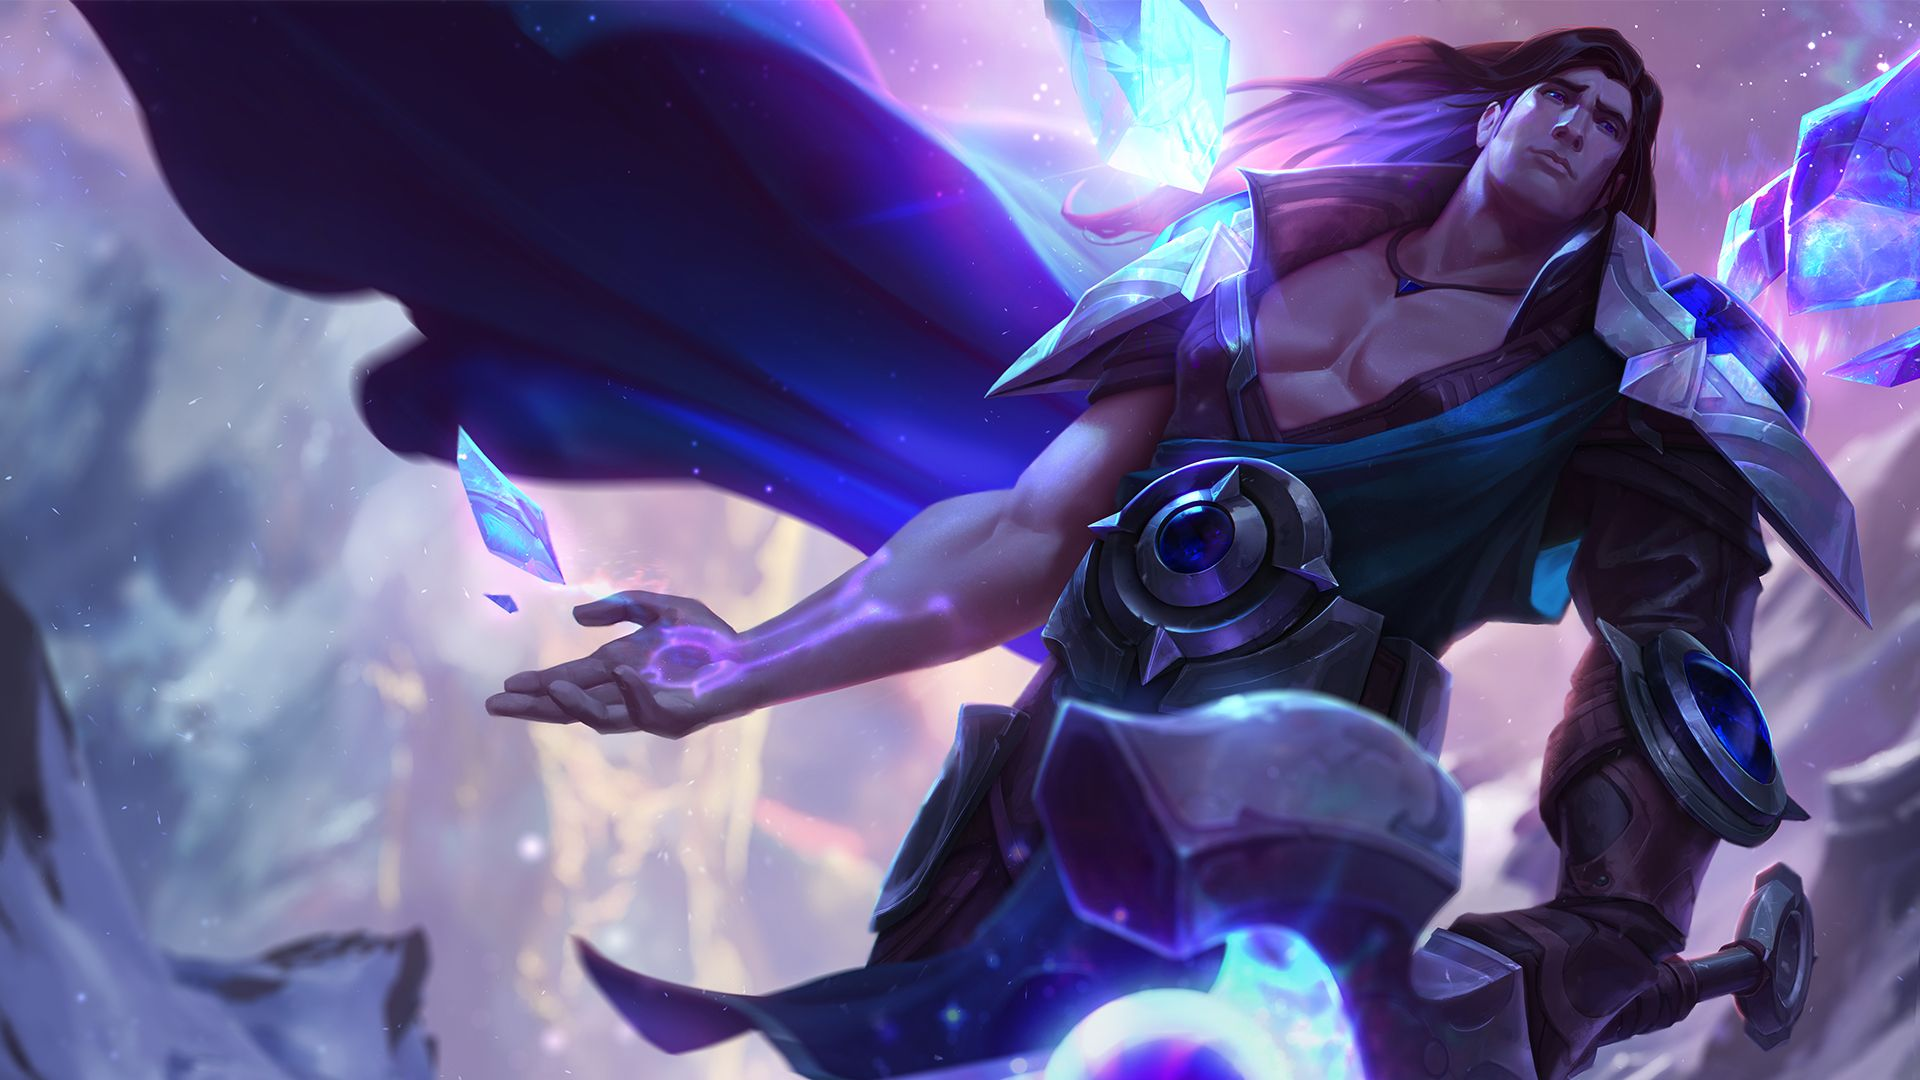 Taric In His Full Majesty Champions League Of Legends League Of Legends Lol League Of Legends